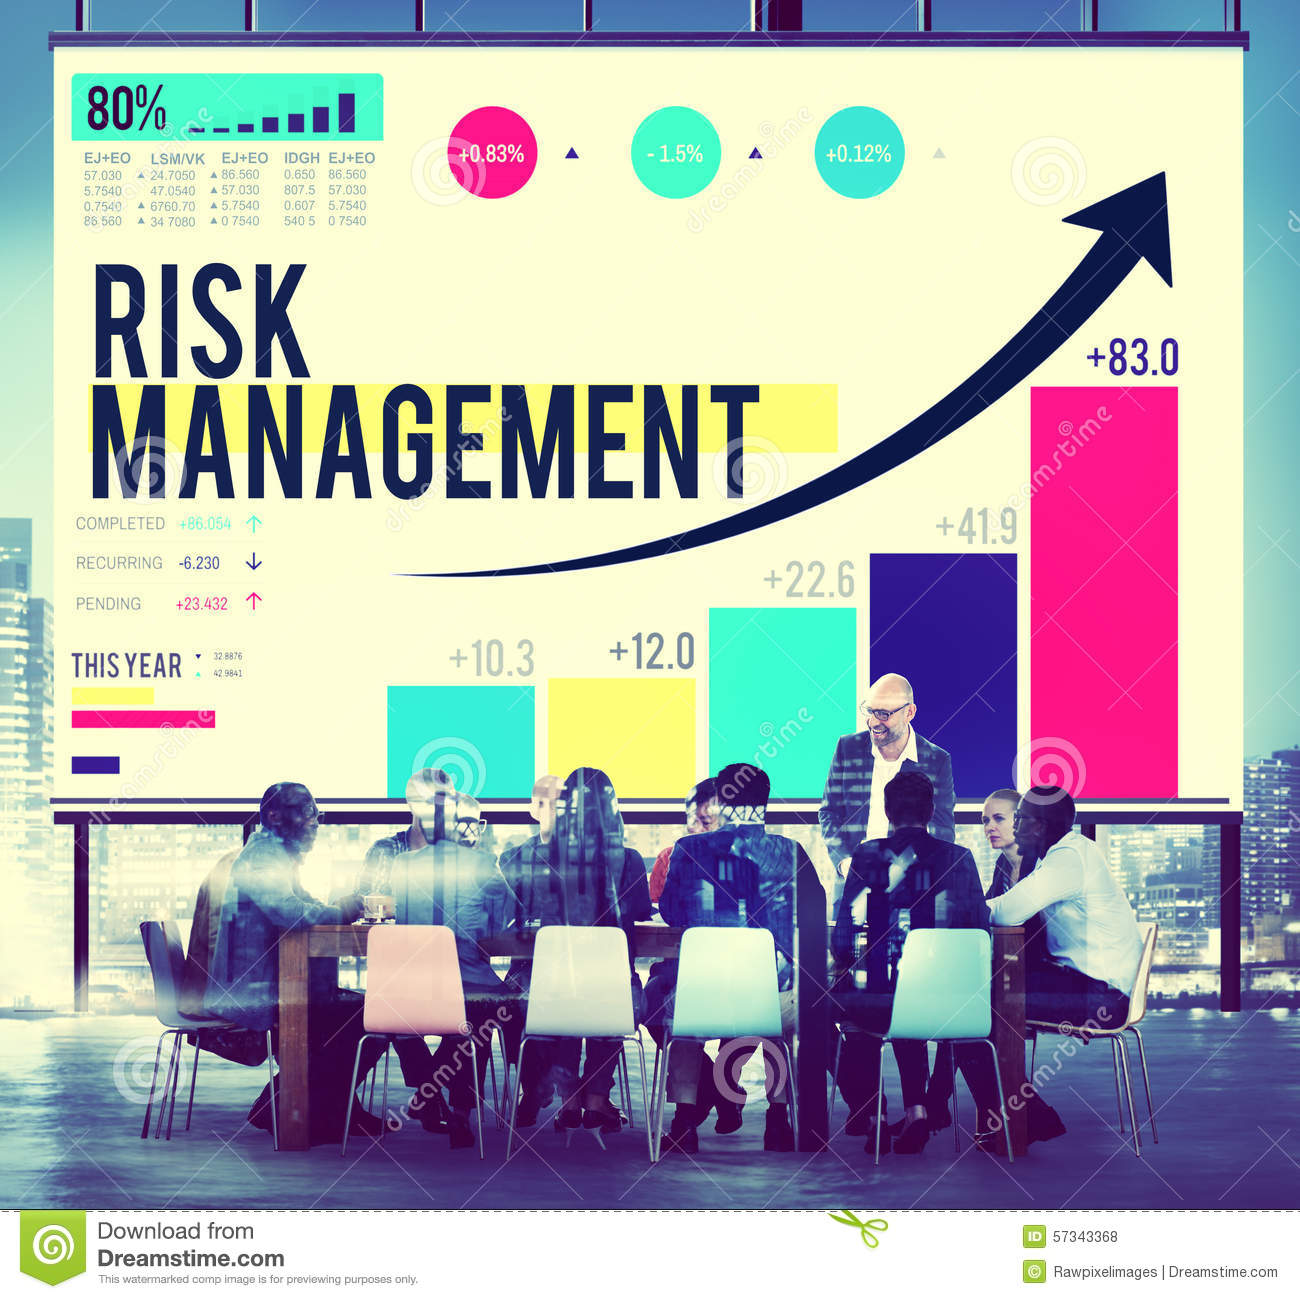 Manage Your Opportunities Be: Risk Management Opportunity Planning Safety Concept Stock